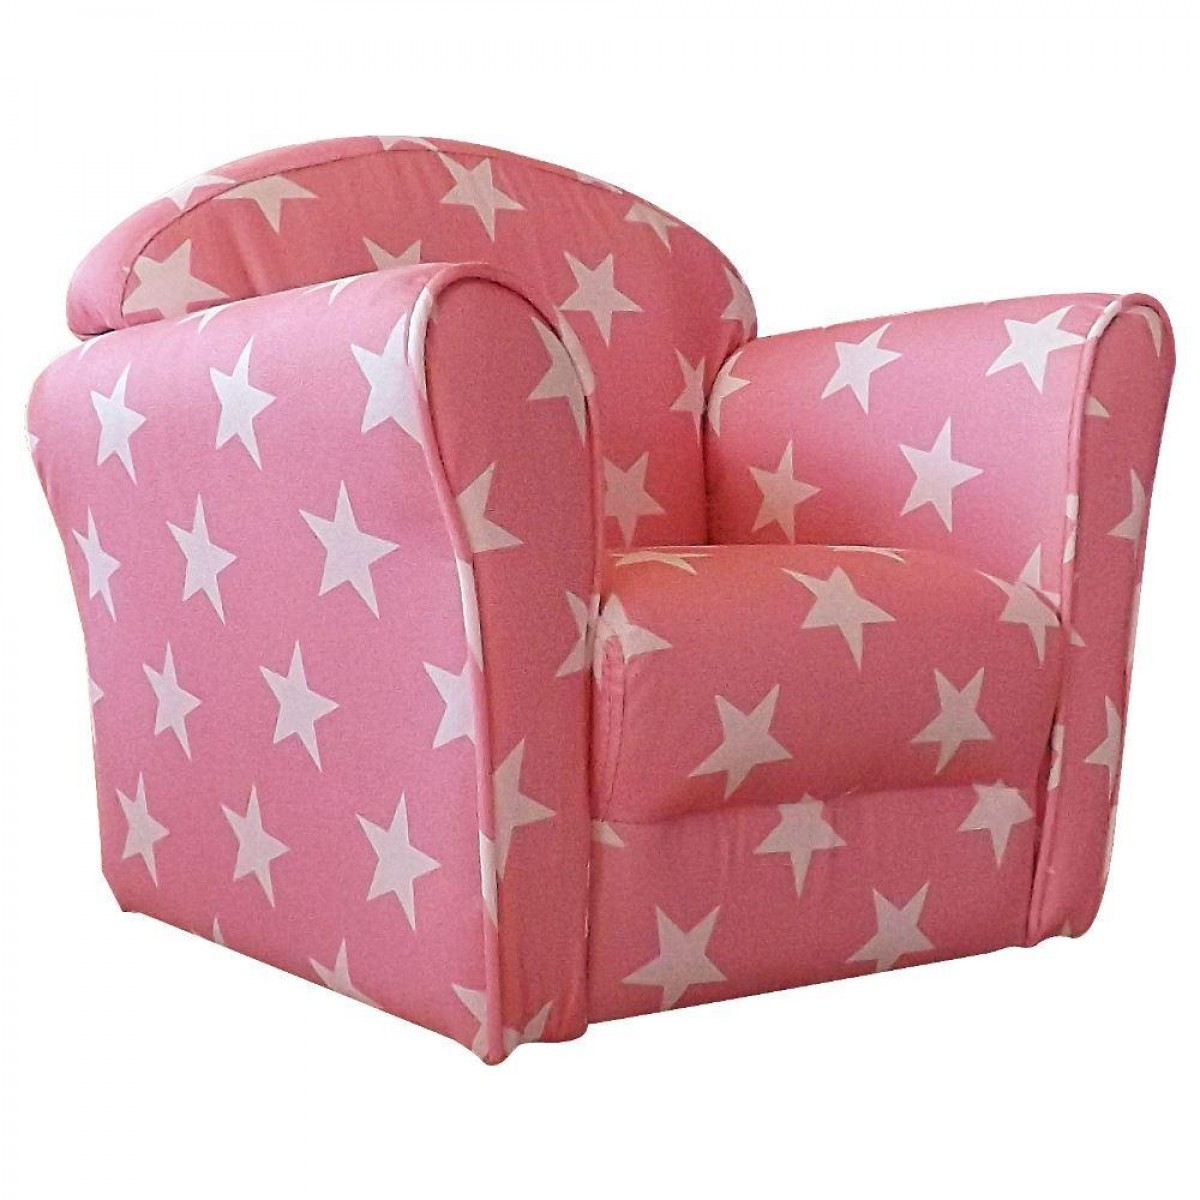 Children's Pink and White Stars Mini Armchair